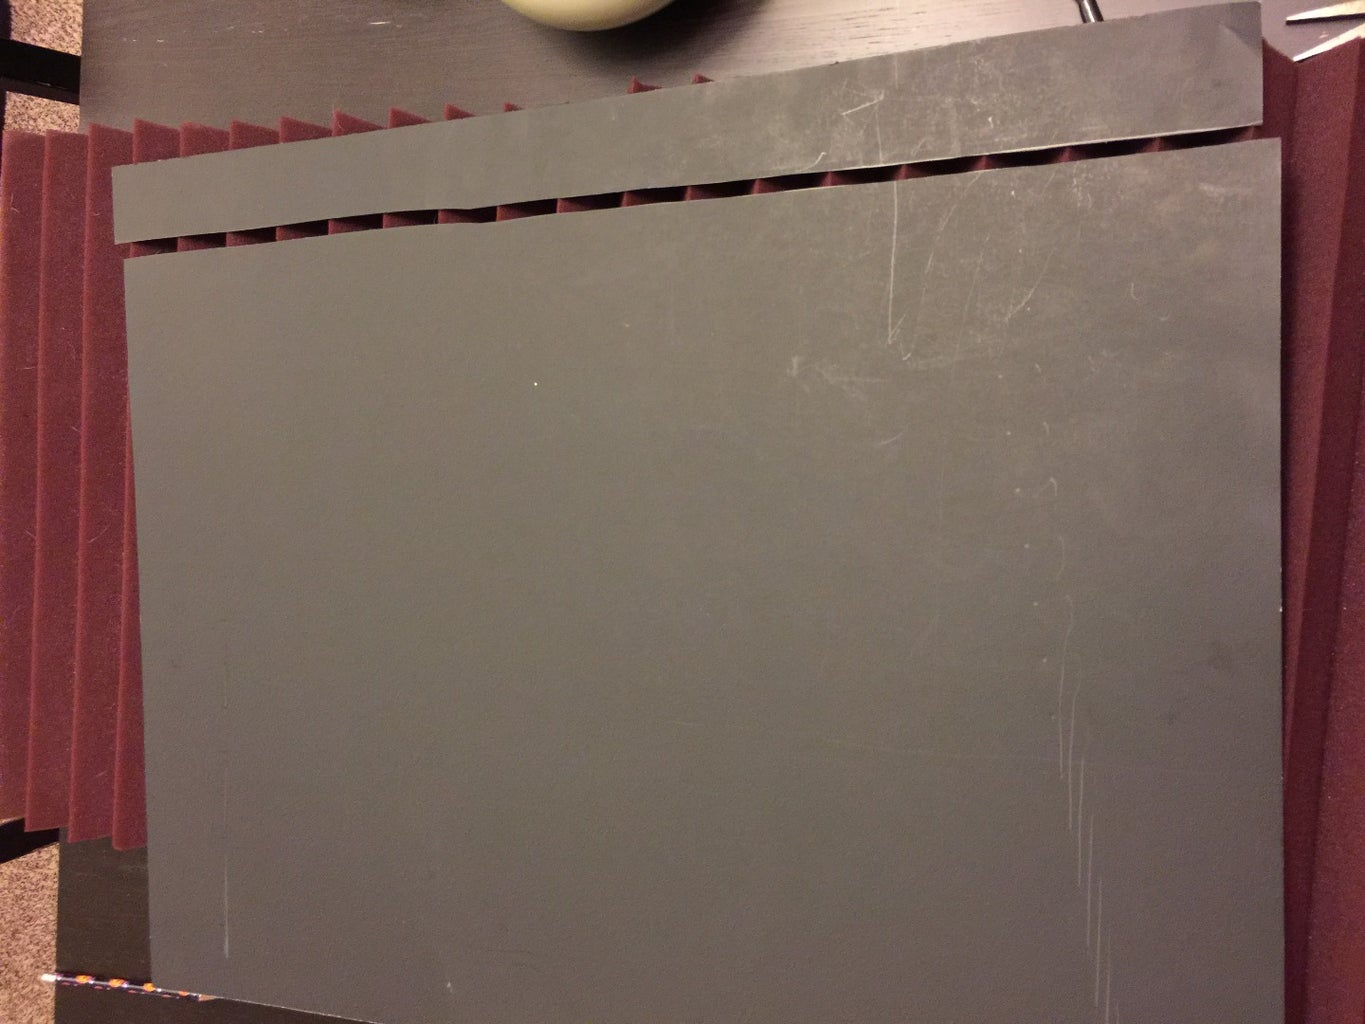 Cut the Poster Board to Fit the Foam